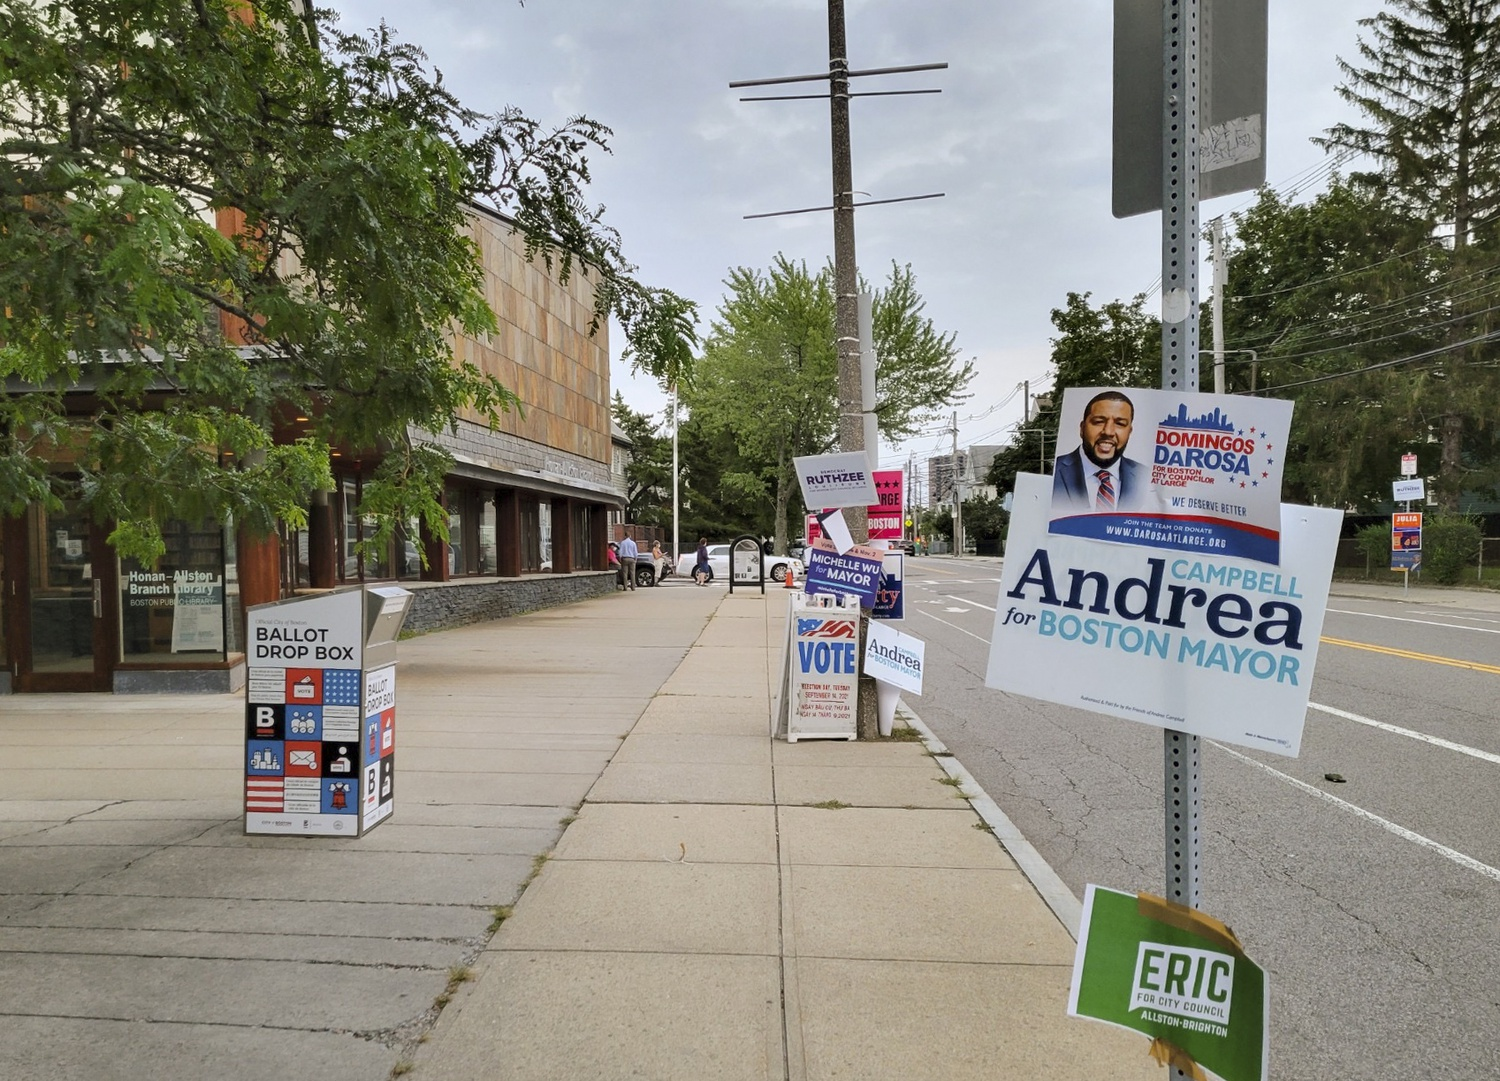 Voters drop off ballots at the Honan-Allston Branch Library Tuesday morning. Boston held its preliminary Mayoral and City Council elections this week.